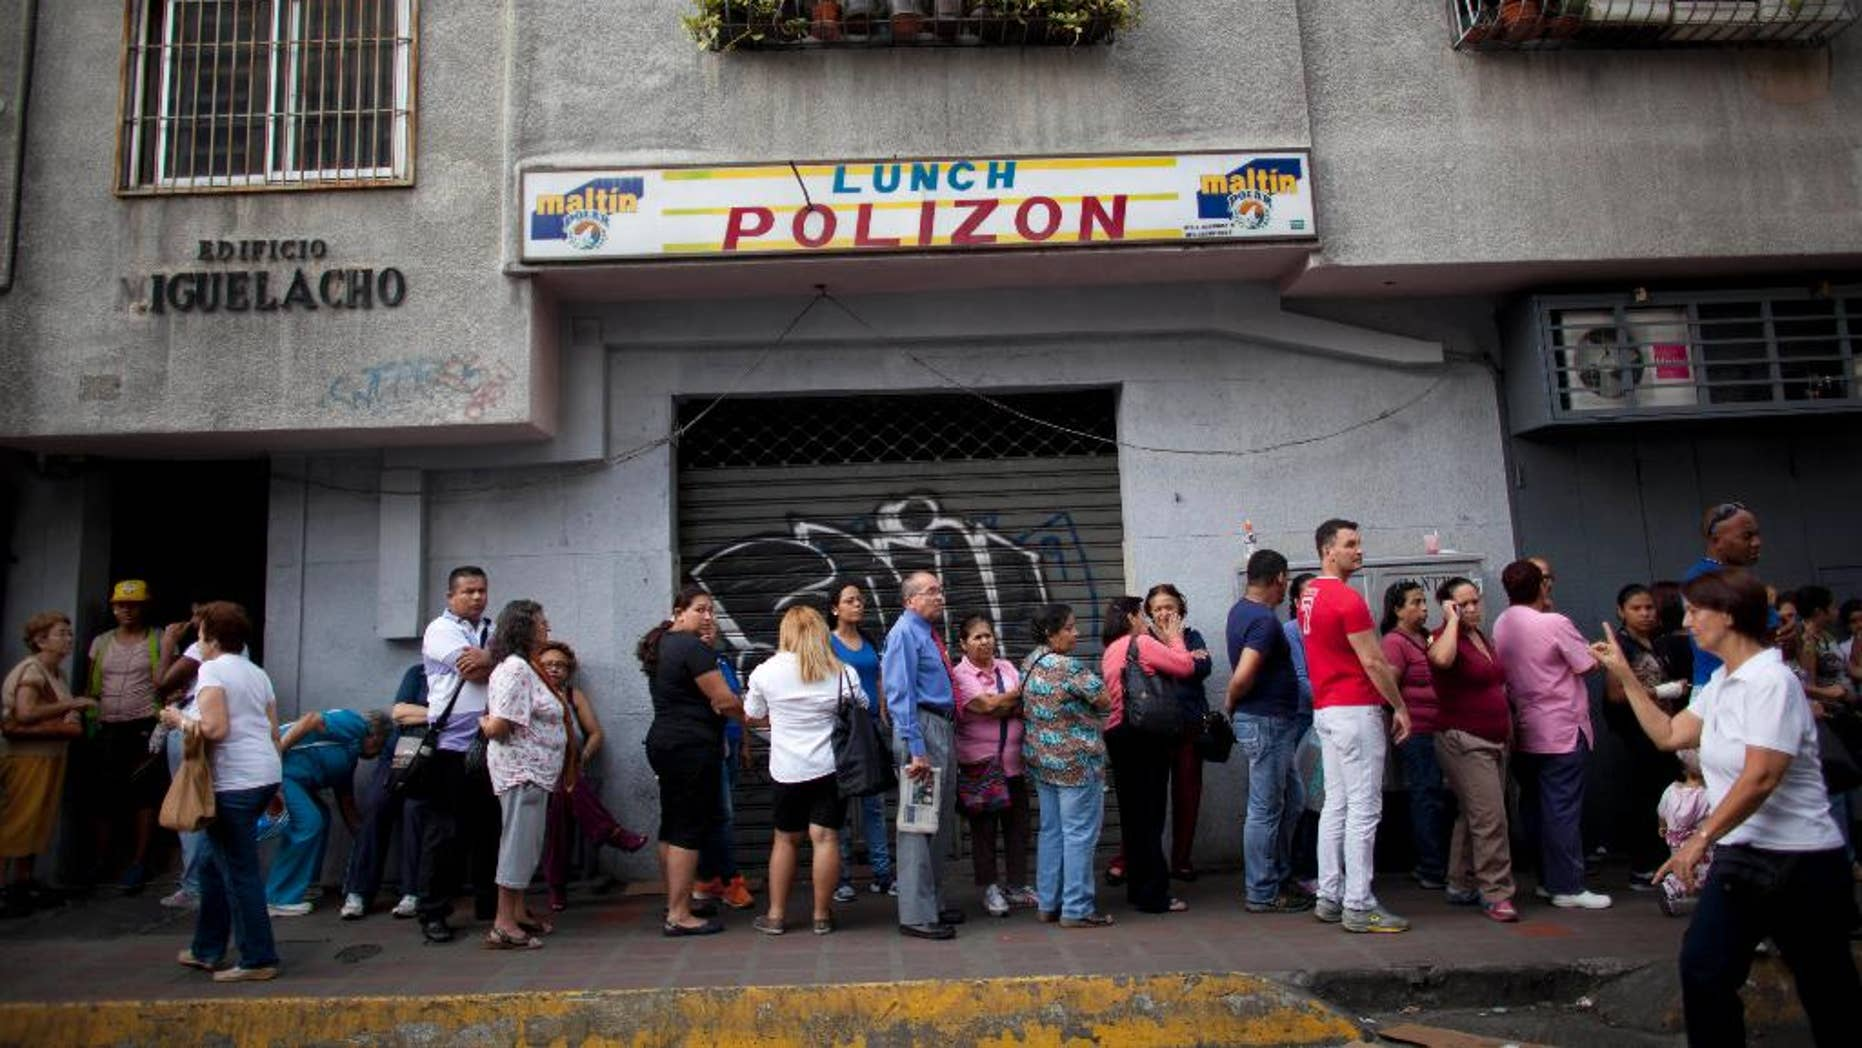 FILE - In this Oct. 23, 2014 file photo, people wait in line to enter a small market to try to buy hard to find items like disposable diapers, laundry detergent and razors in downtown Caracas, Venezuela. President Nicolas Maduro announced Friday, Oct. 31 he is deploying hundreds of inspectors to enforce the government's price regulations on retailers. (AP Photo/Ariana Cubillos, File)